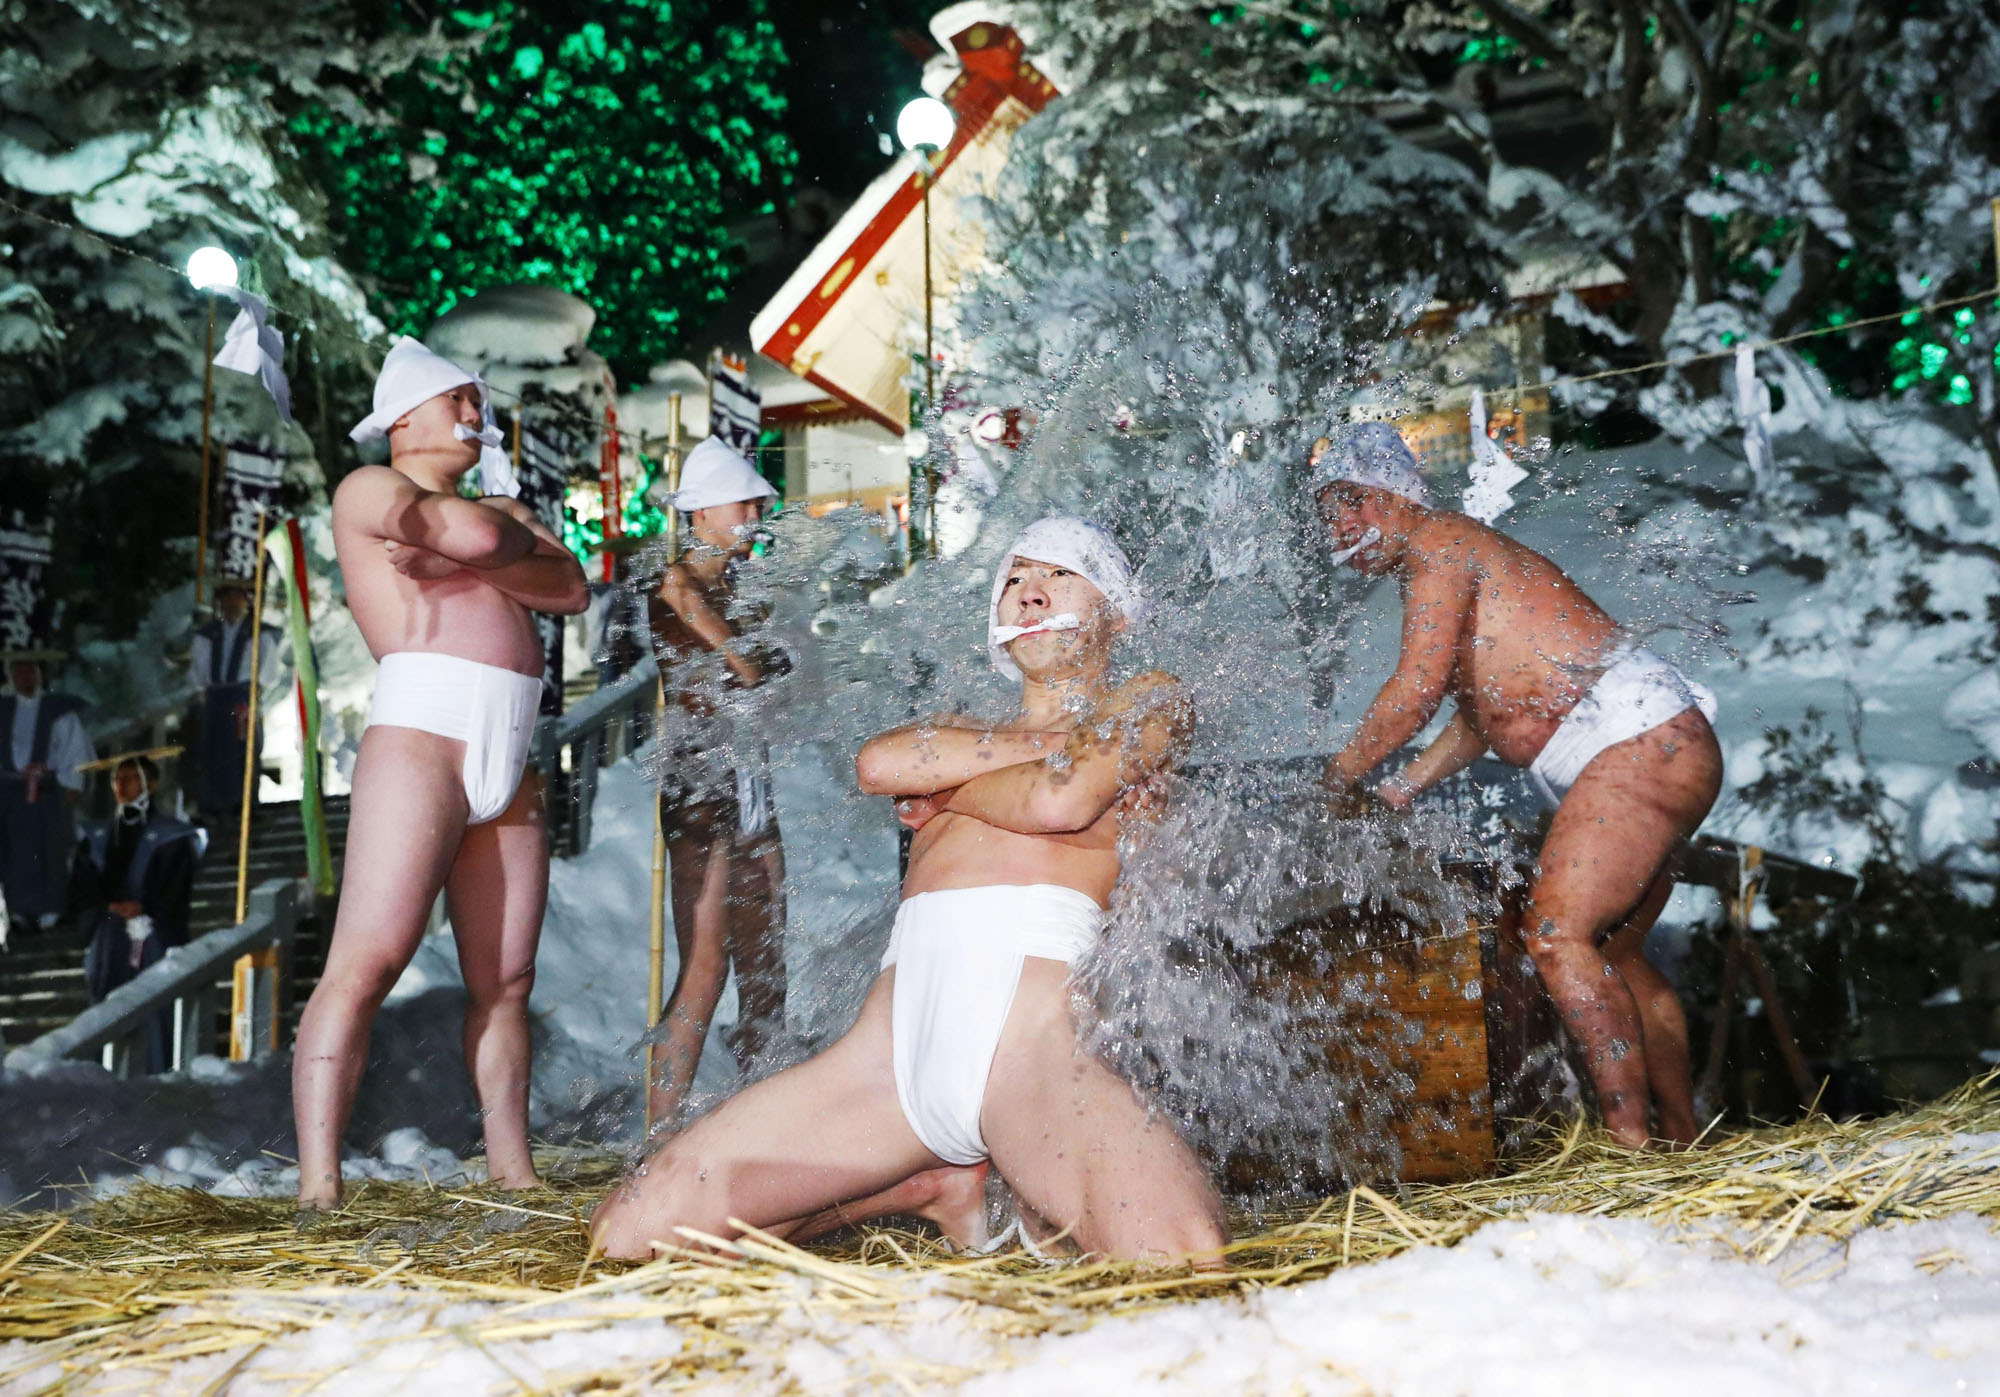 Four men splash cold water over each other in temperatures of minus 5 Celsius during a Shinto ritual dating back to 1831 to pray for bumper fish and farm crops at a shrine in Kikonai, Hokkaido, in January 2017. | KYODO